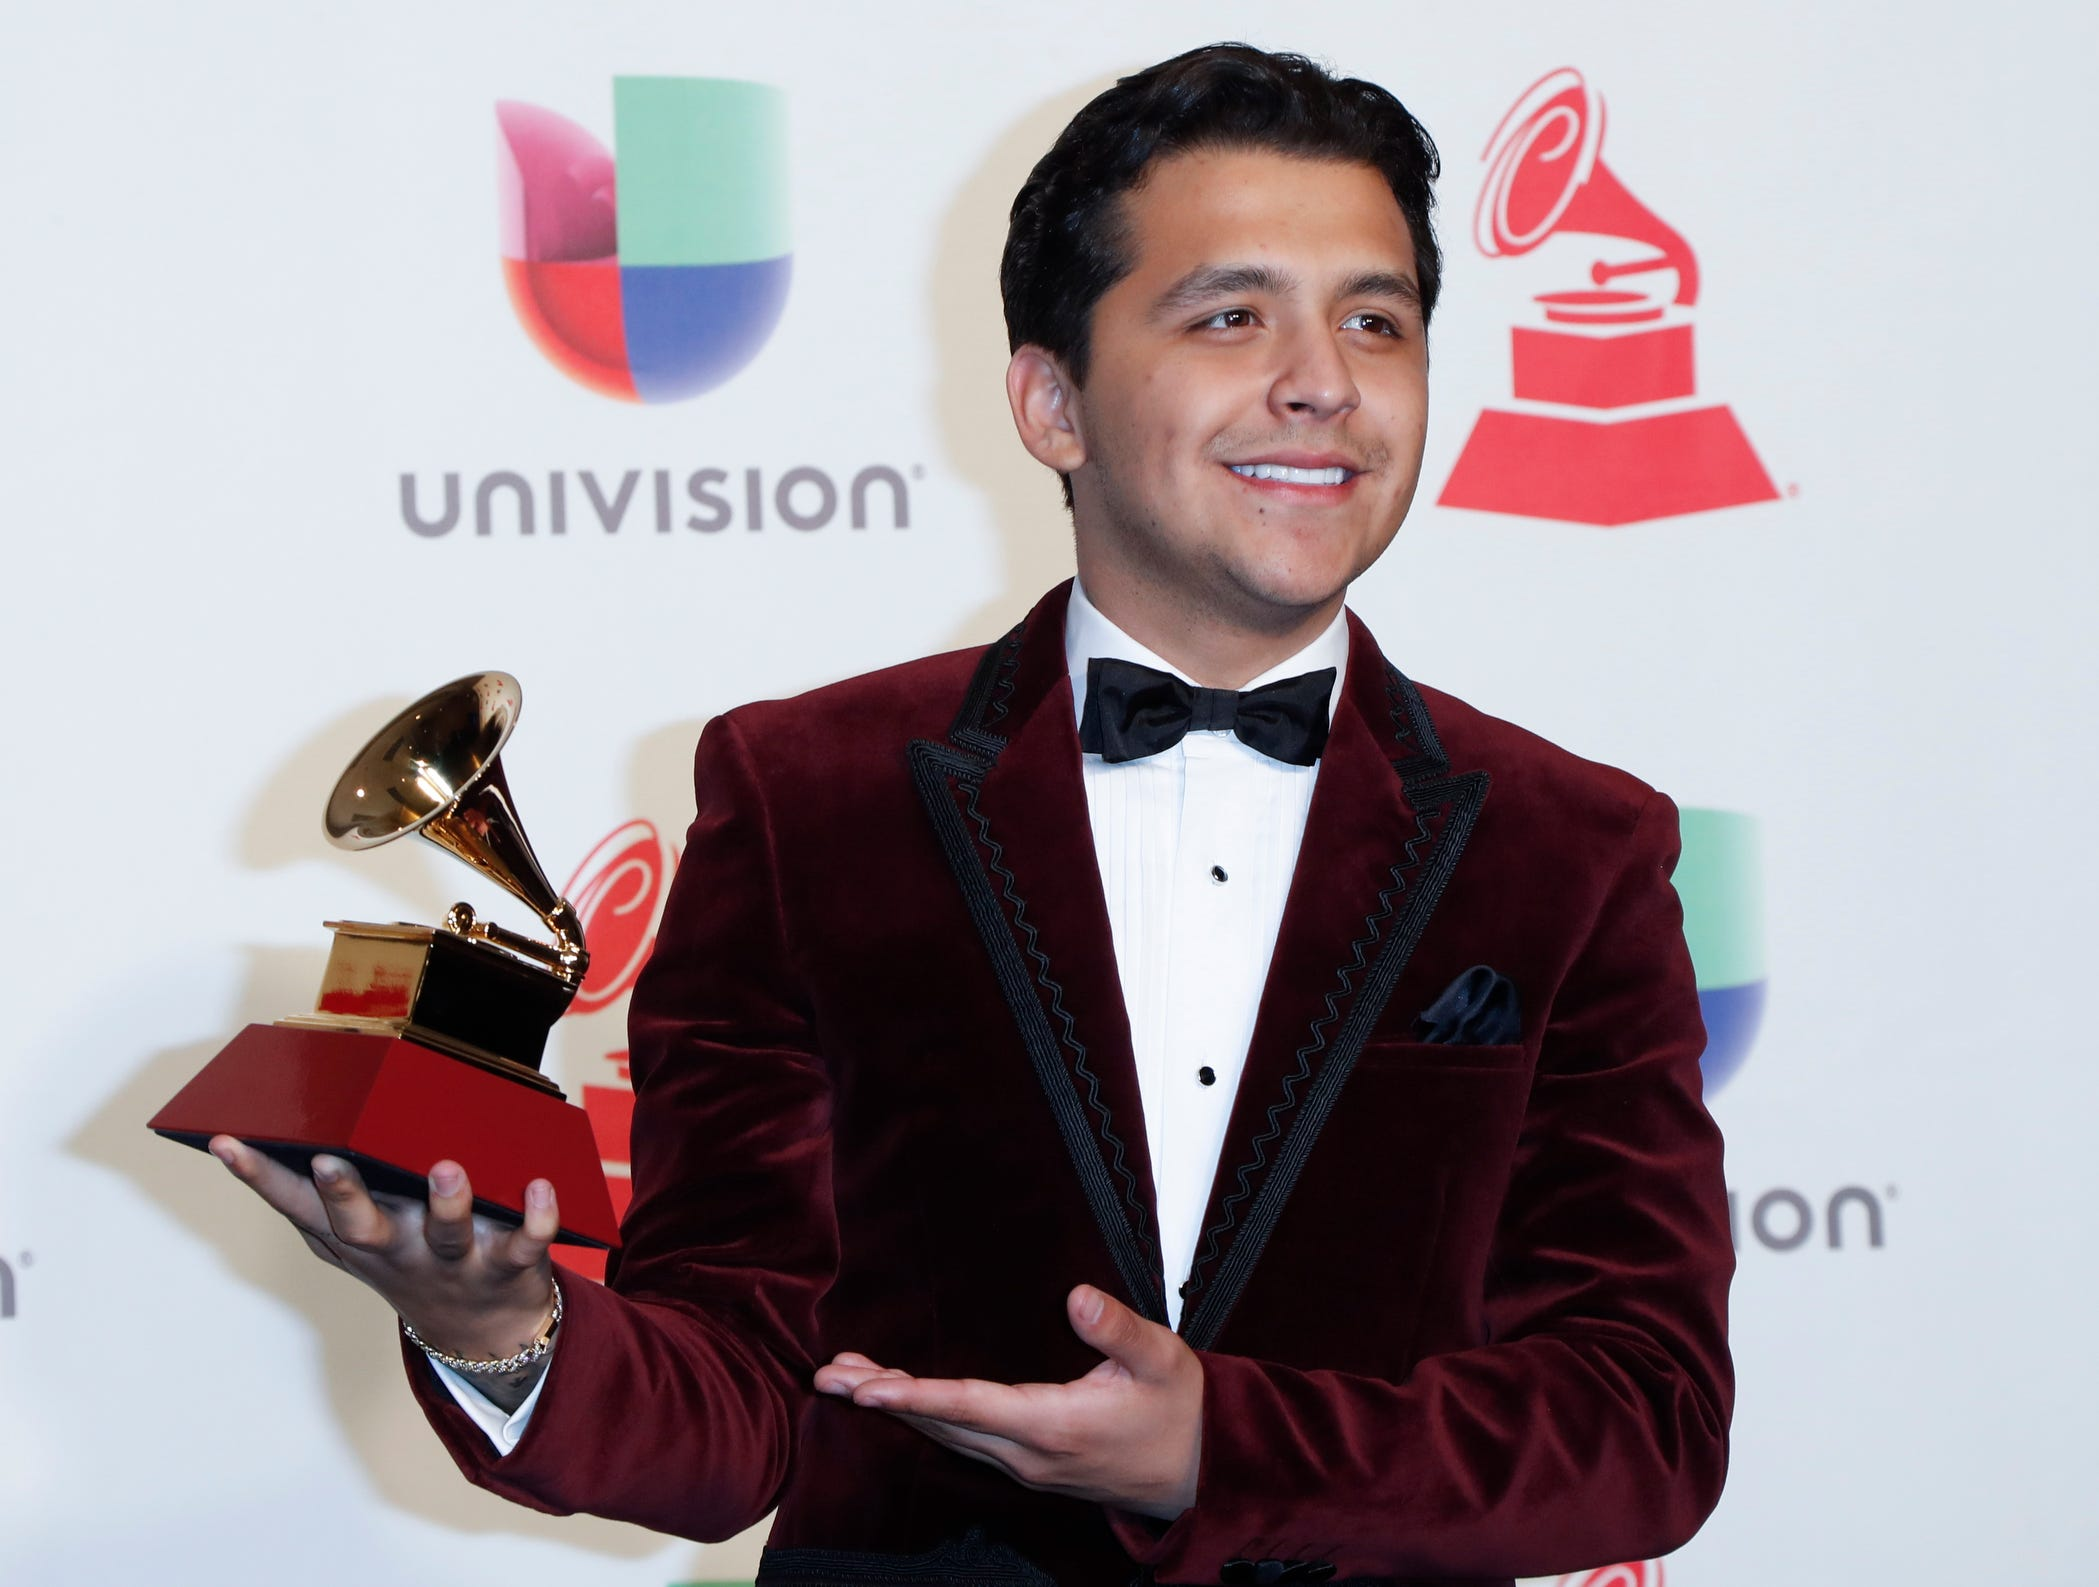 Christian Nodal with the award for Best Regional Song.